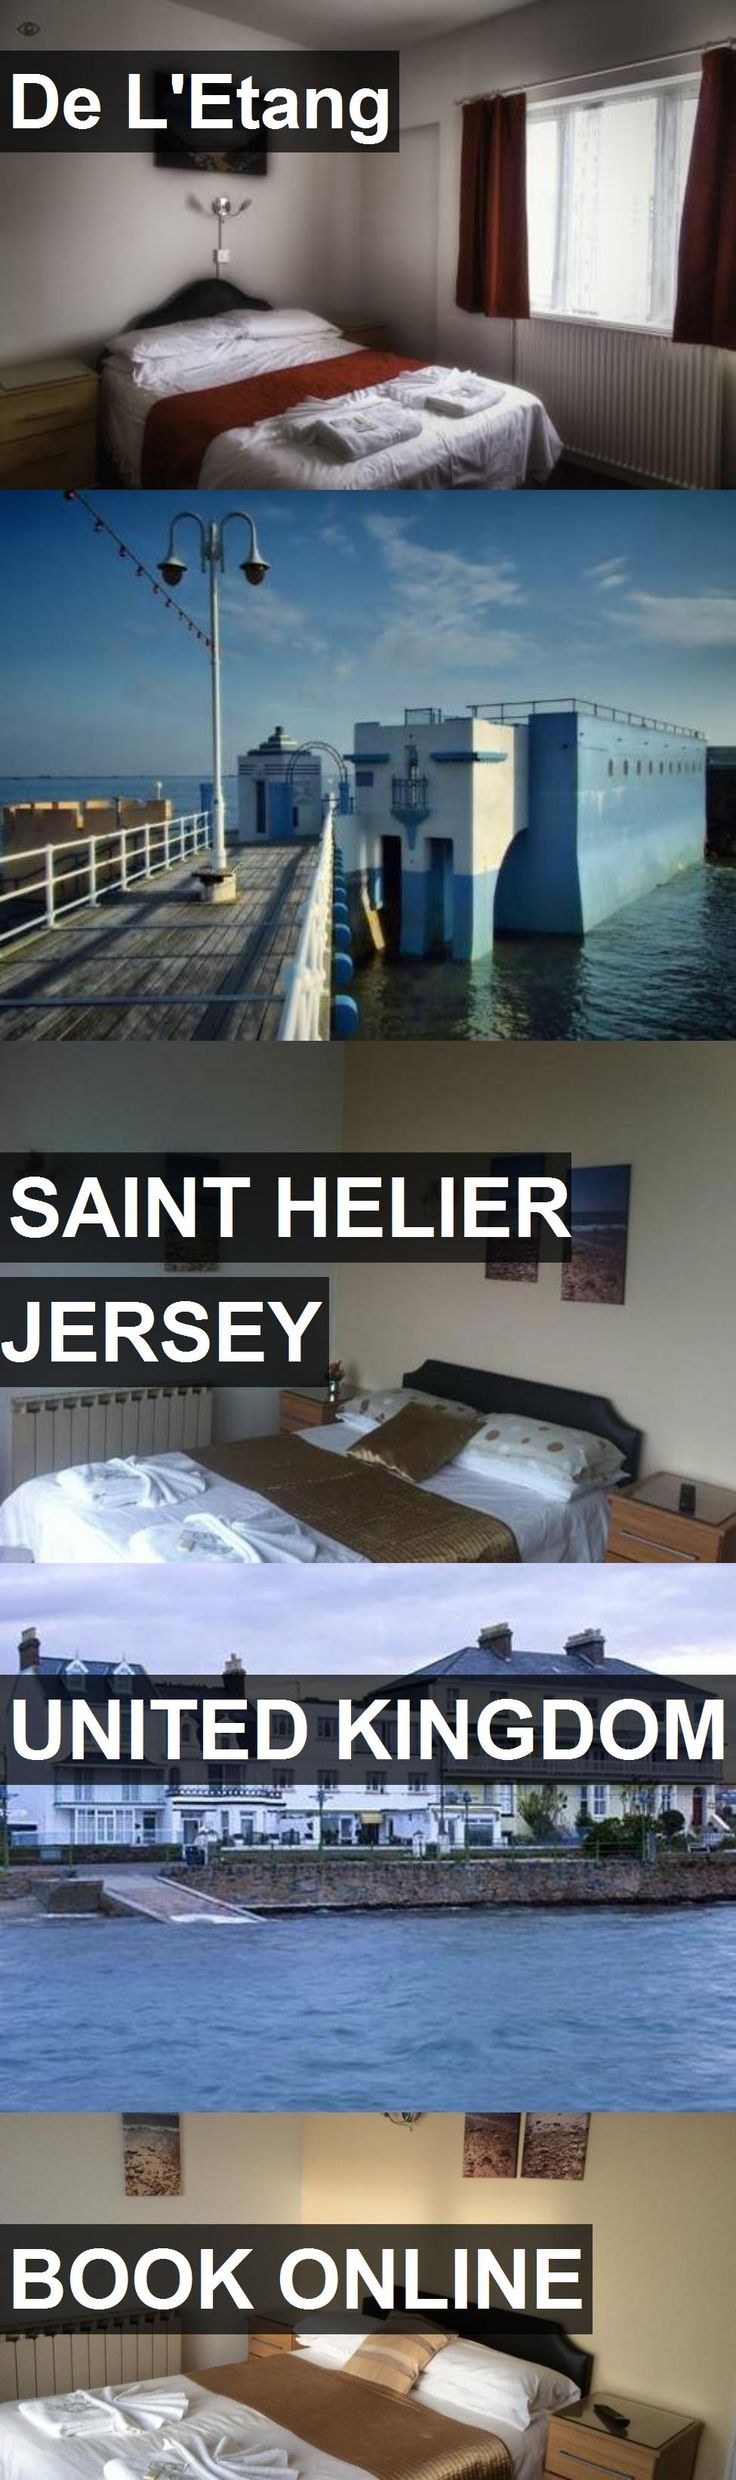 Hotel De L'Etang in Saint Helier Jersey, United Kingdom. For more information, photos, reviews and best prices please follow the link. #UnitedKingdom #SaintHelierJersey #travel #vacation #hotel